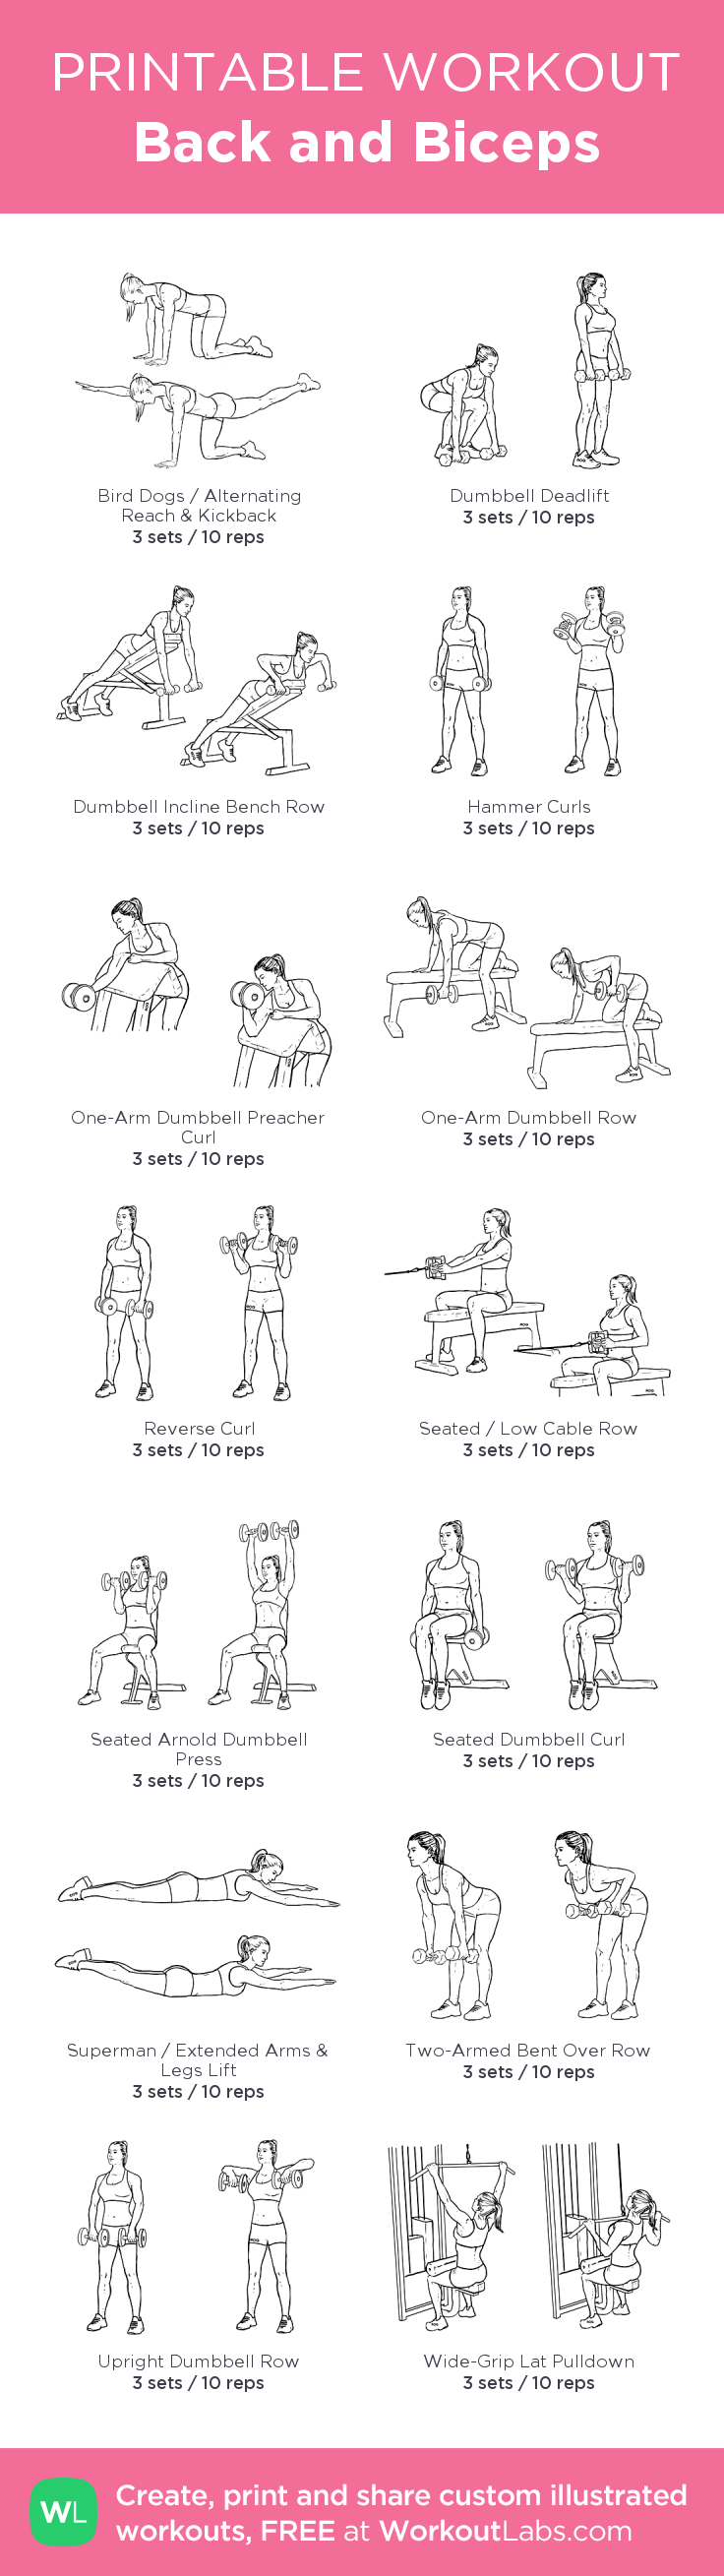 Back and Biceps – my custom workout created at WorkoutLabs.com • Click through to download as printable PDF! #customworkout